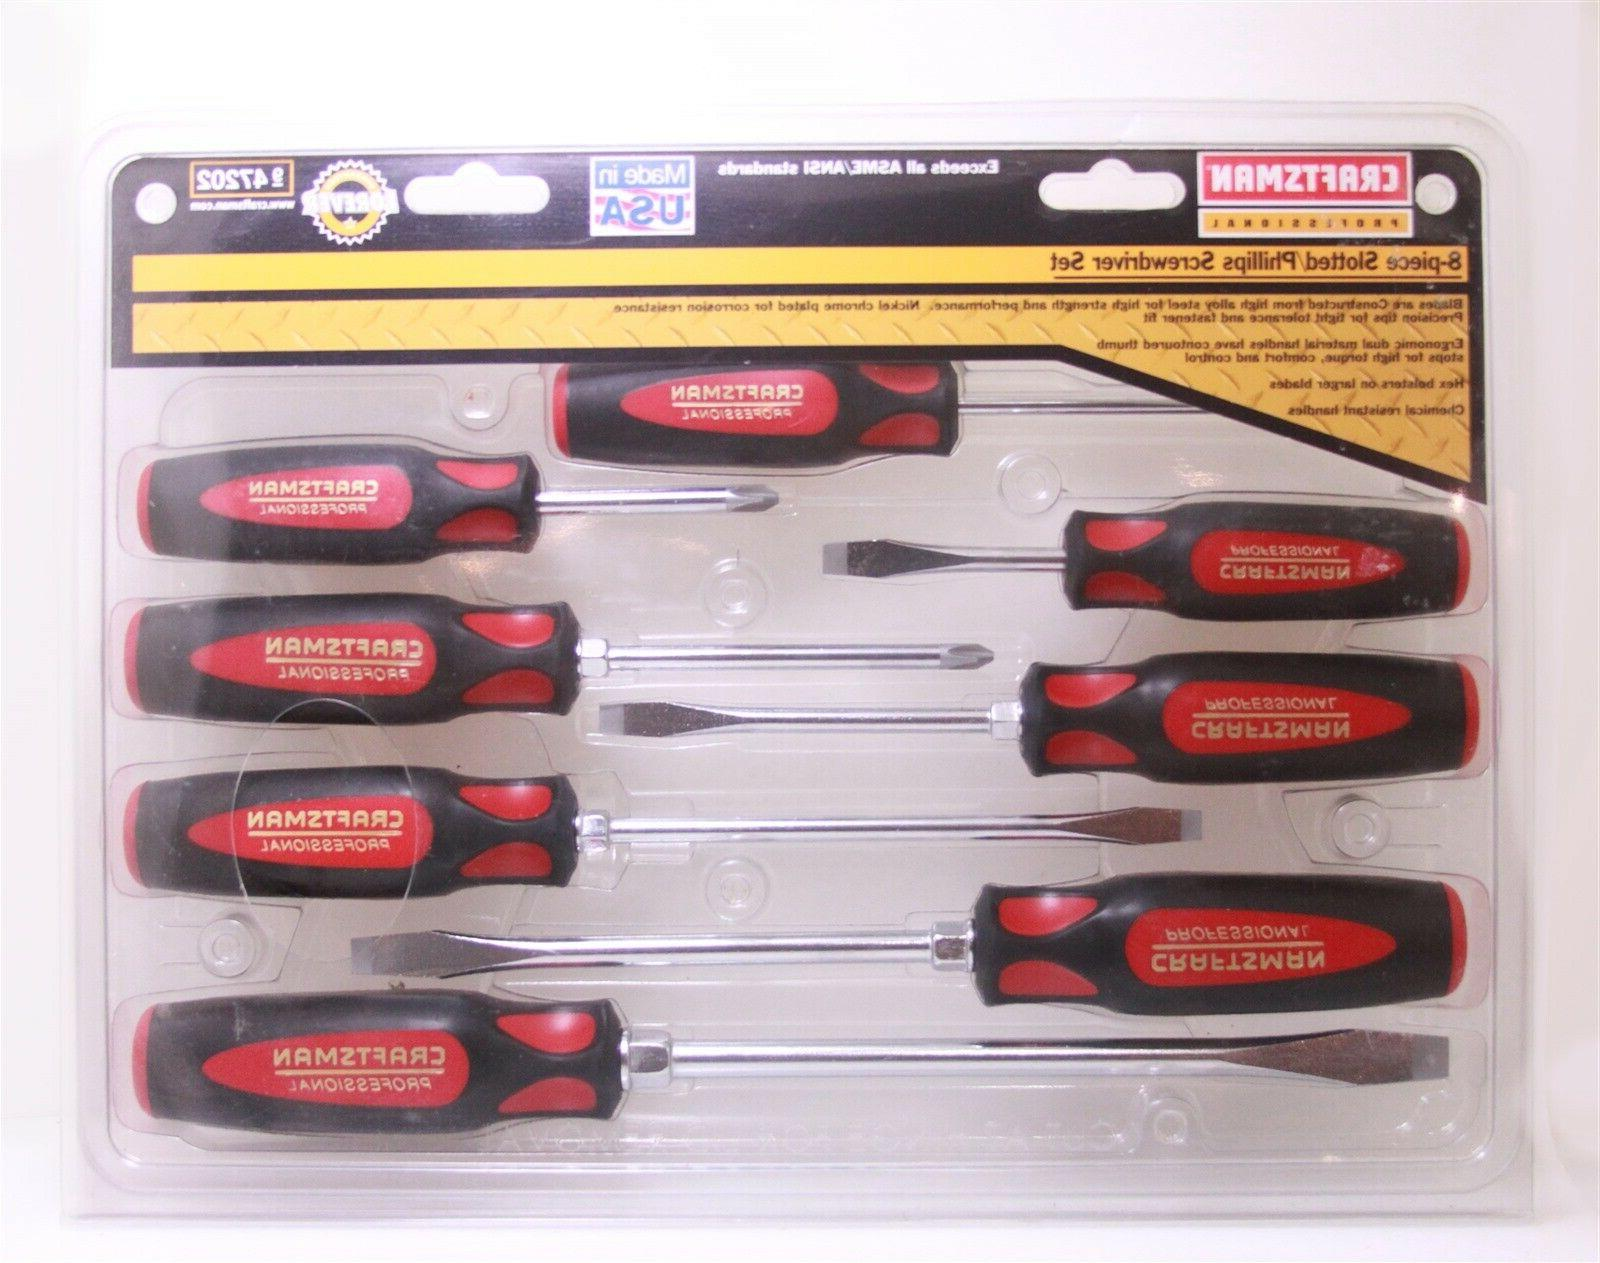 professional 47202 8 pc screwdriver set made